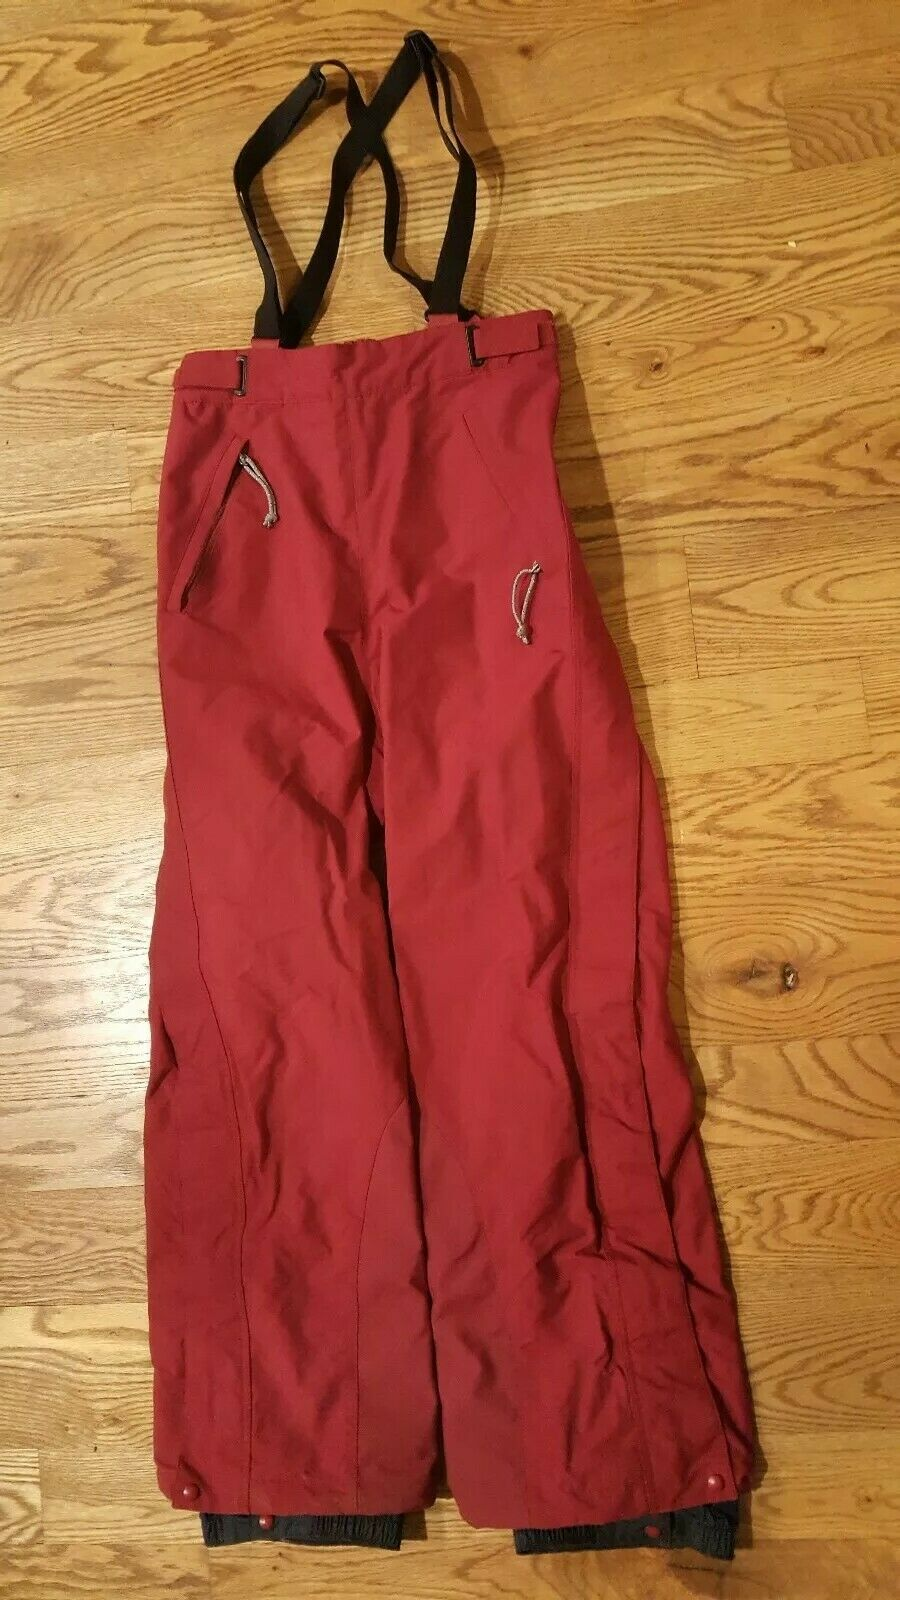 Rare VTG Patagonia damen rot powder bowl Snow Pants bibs Größe 8 ski board